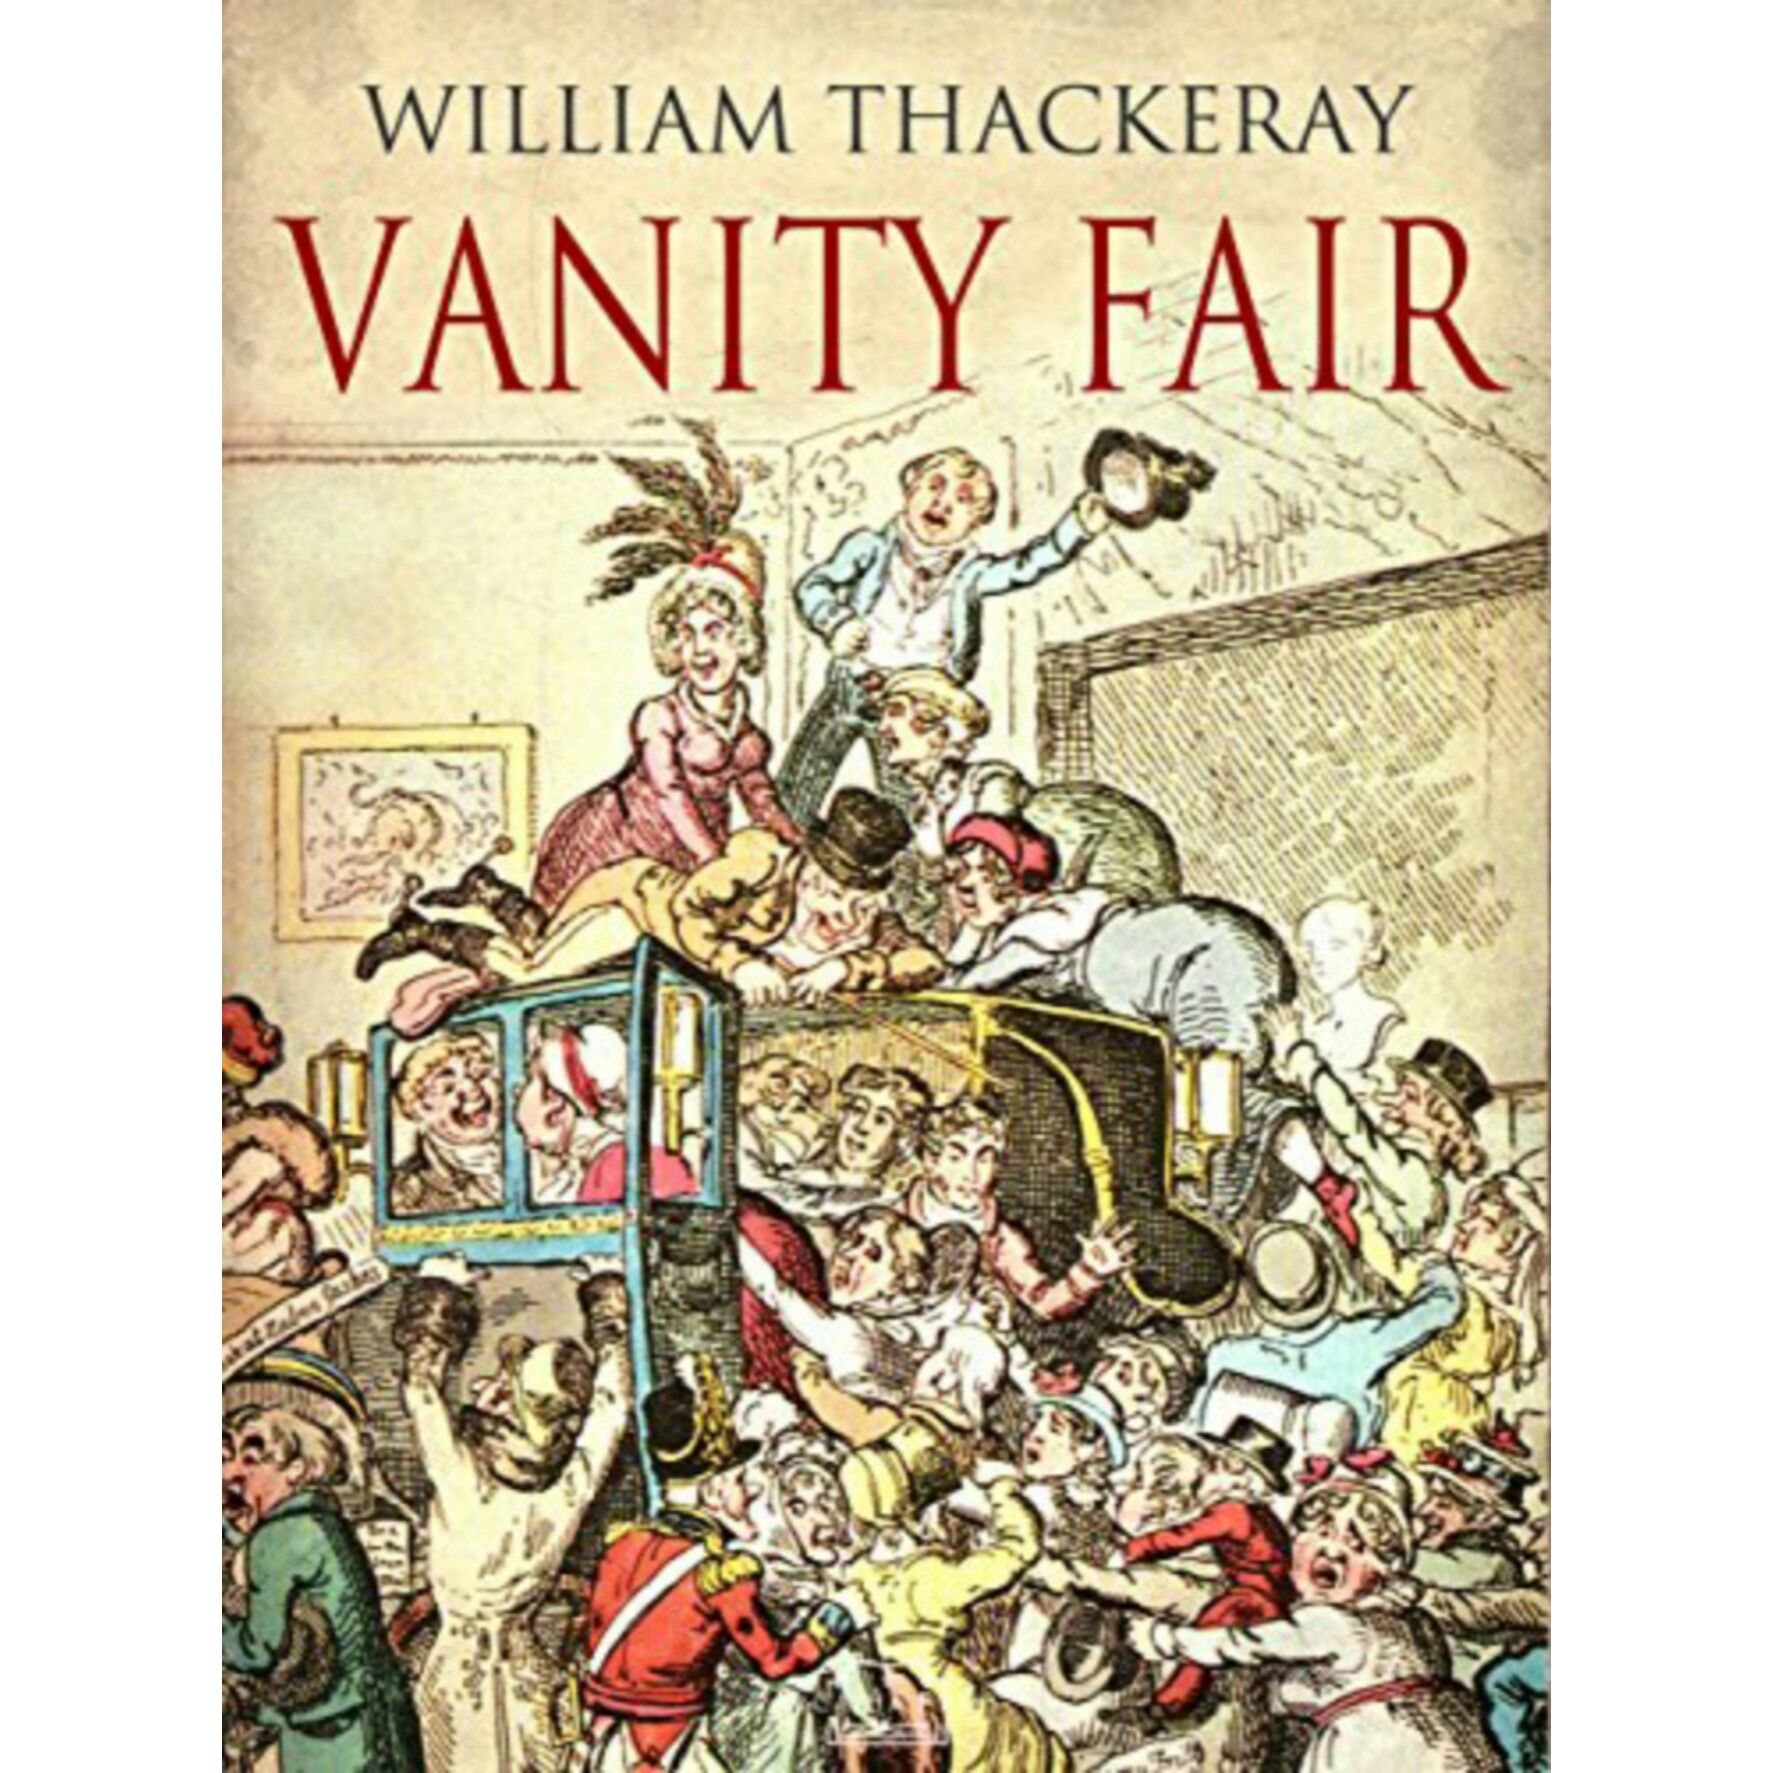 Vanity Fair Is An English Novel By William Makepeace Thackeray Which Follows The Lives Of Becky Sharp And Amelia Sedley Amid Their Friends And Families